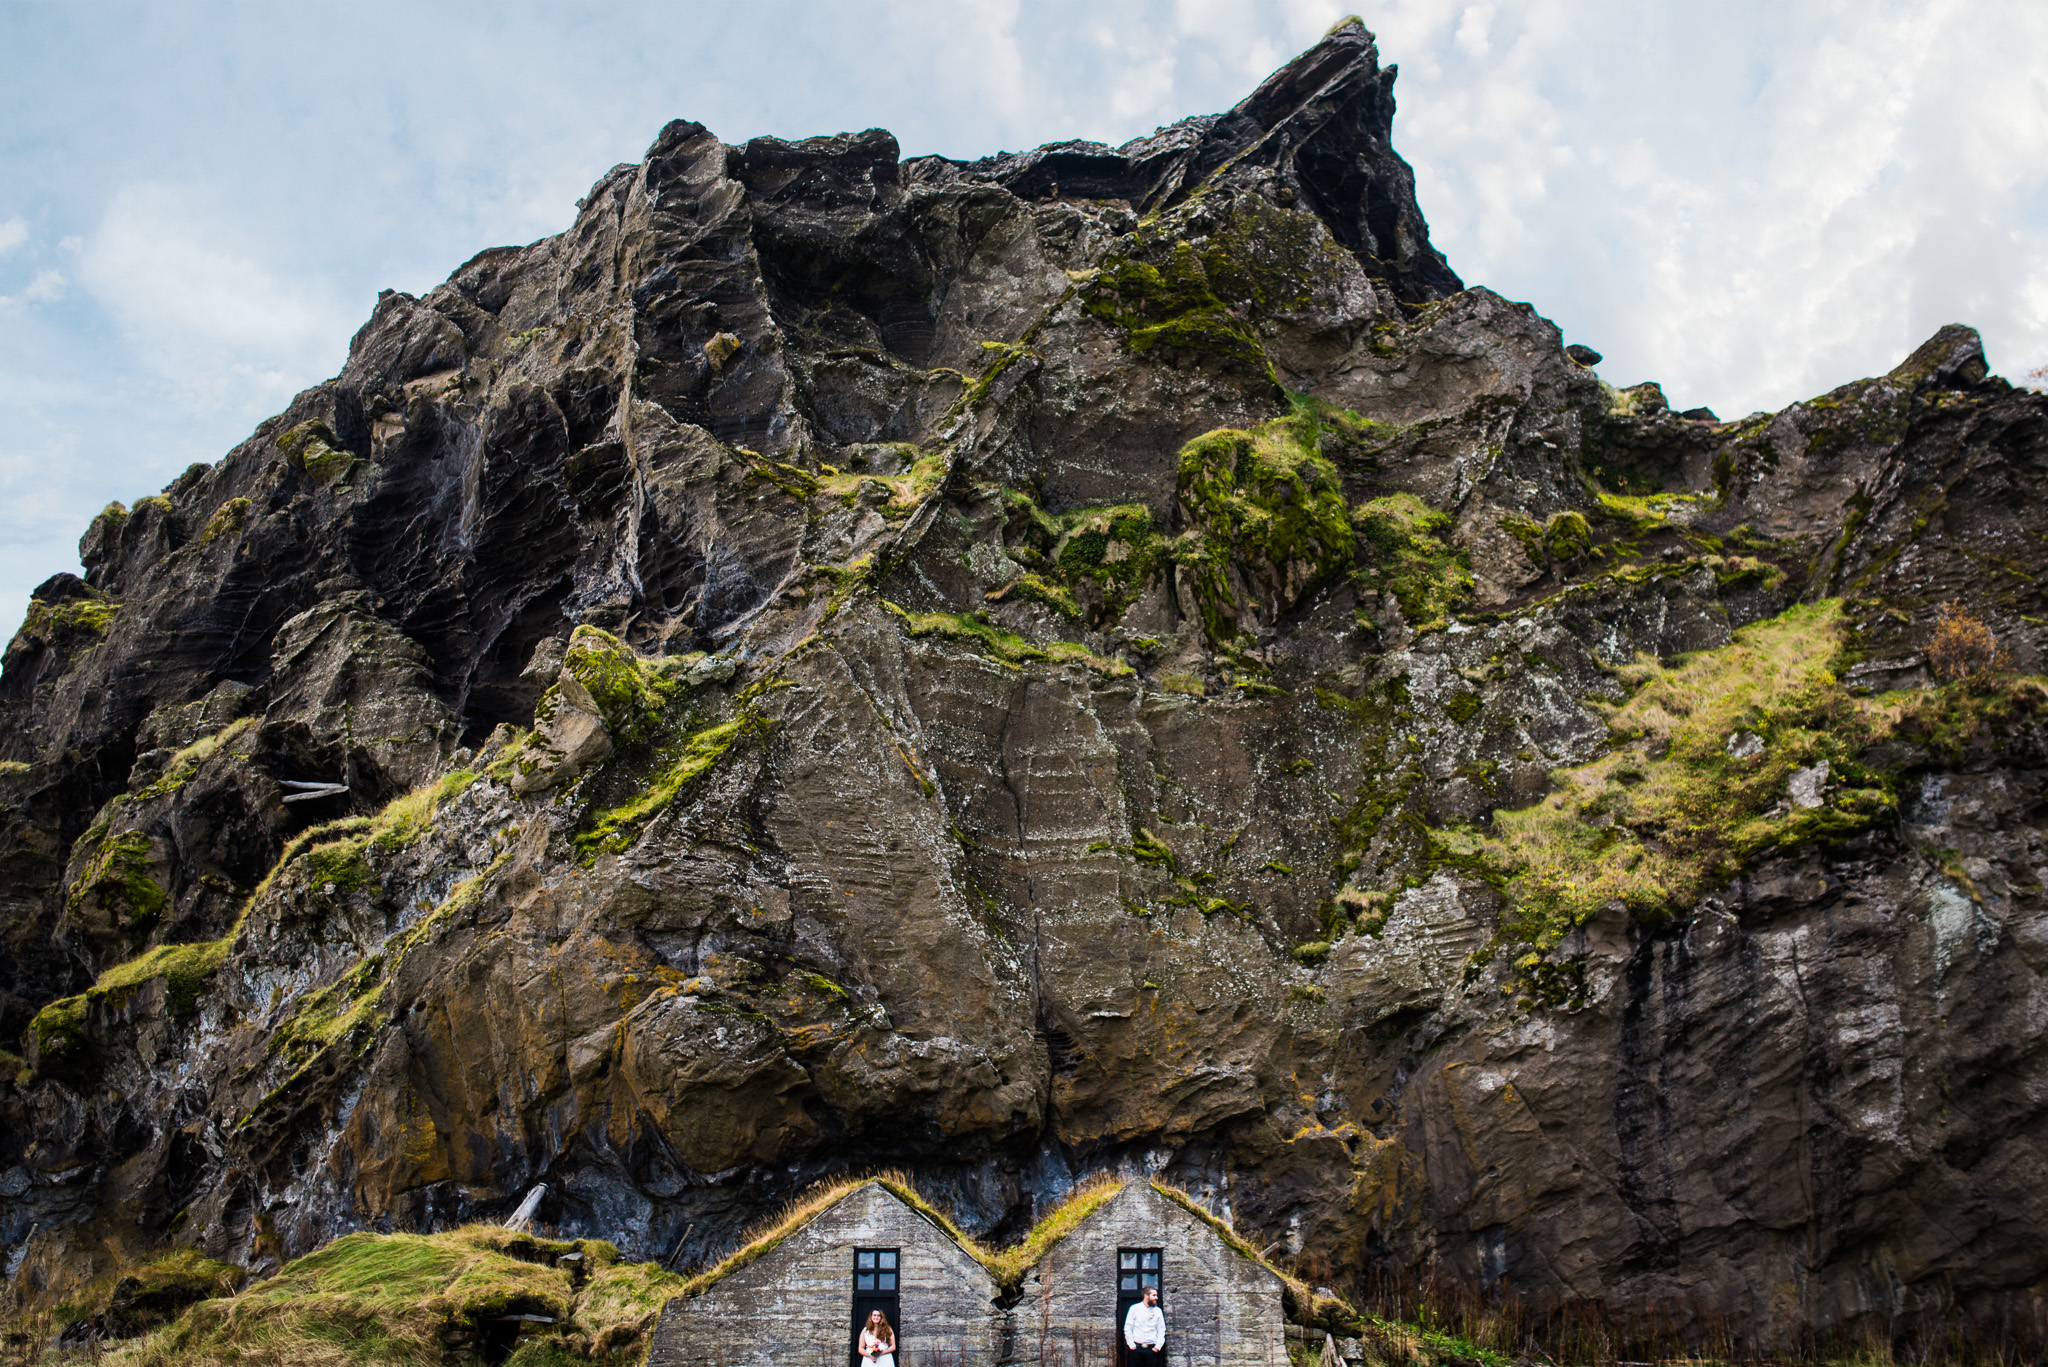 south-iceland-elopement-victoria-wedding-photographers-22.jpg